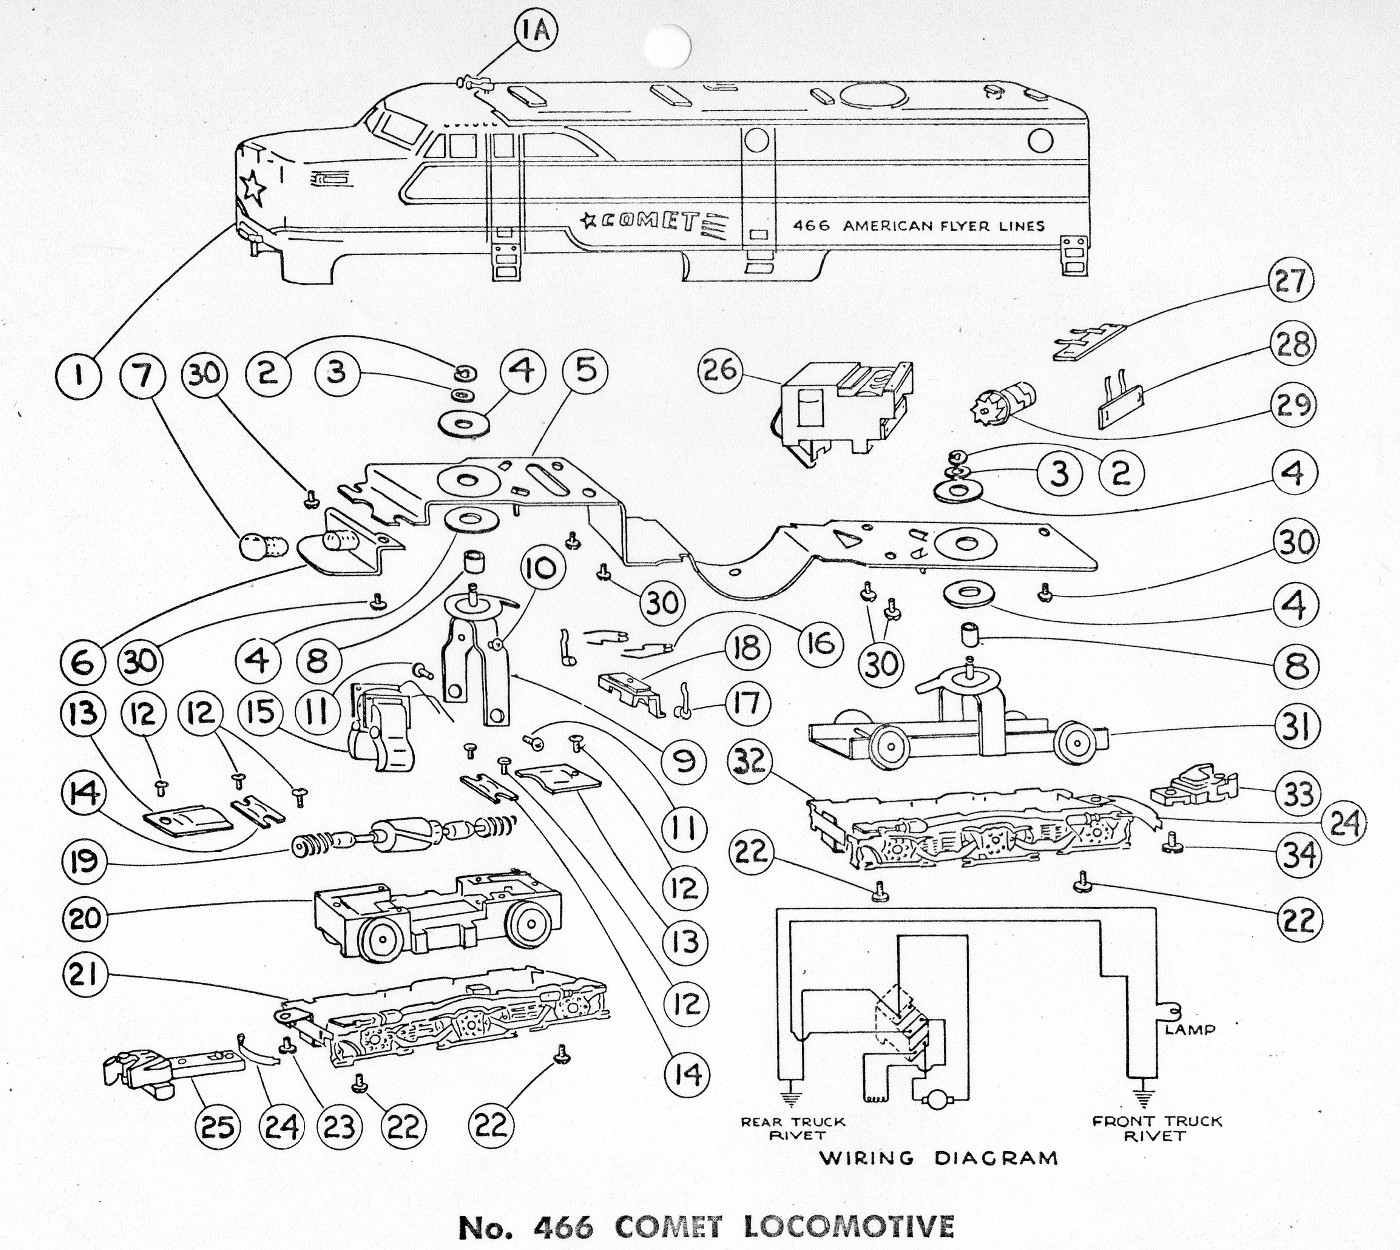 Wiring Lionel Train Parts Diagram Lionel Accessory Wire